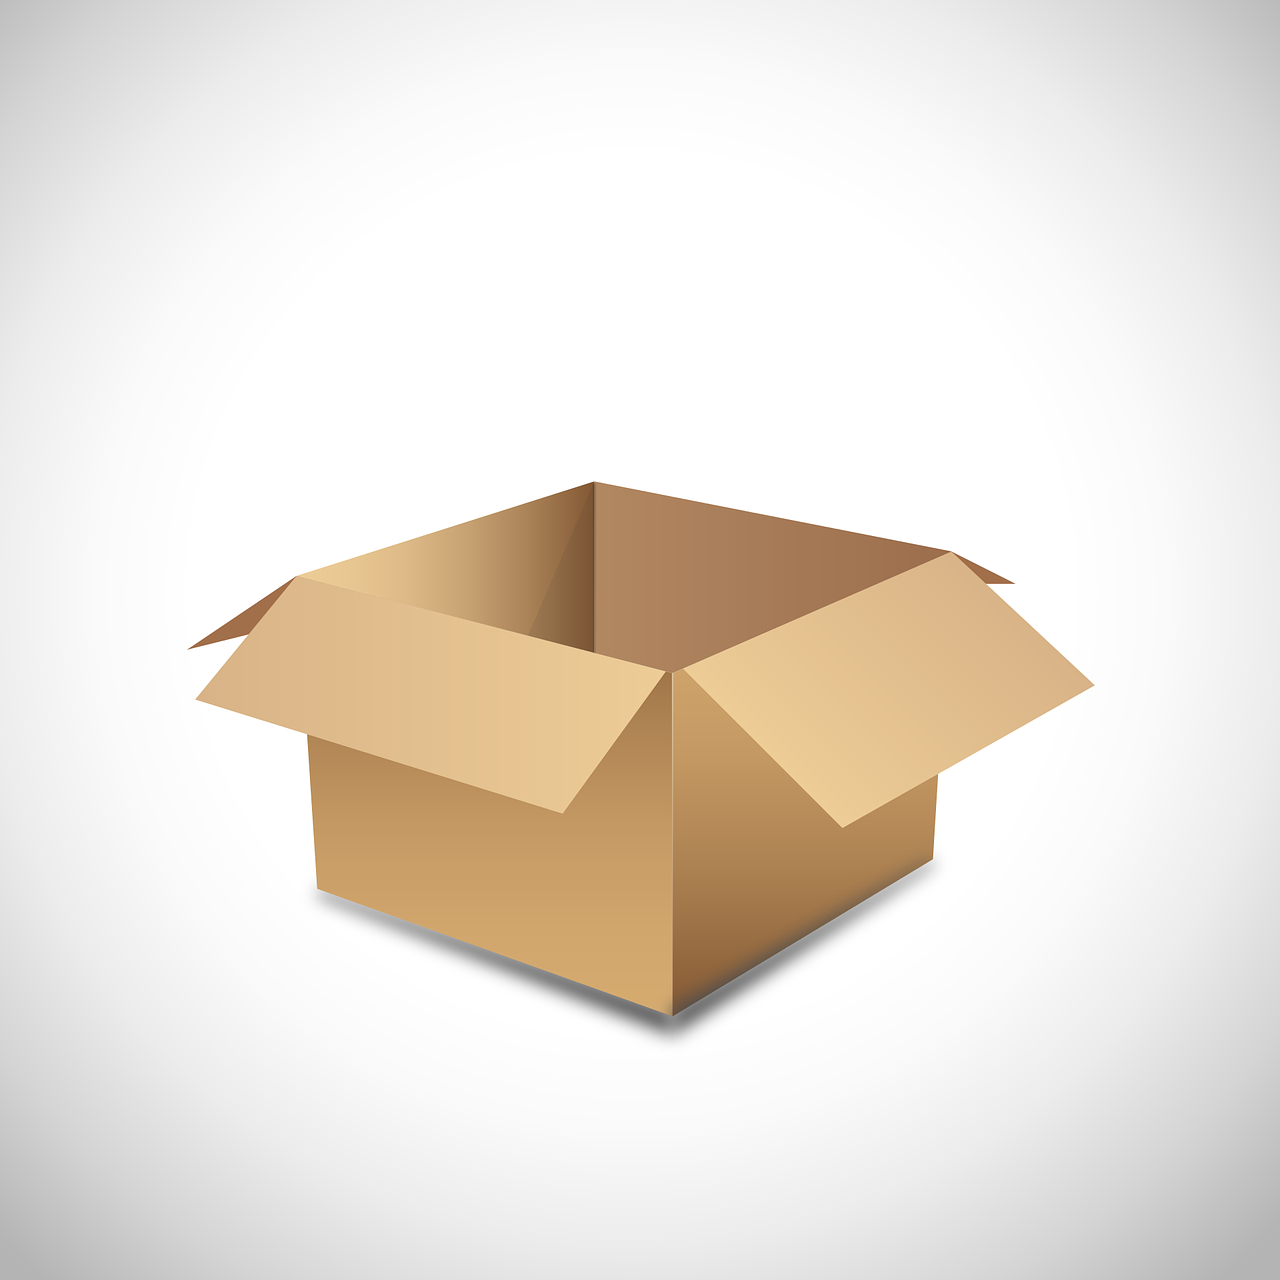 Use appropriate boxes when packing for storage